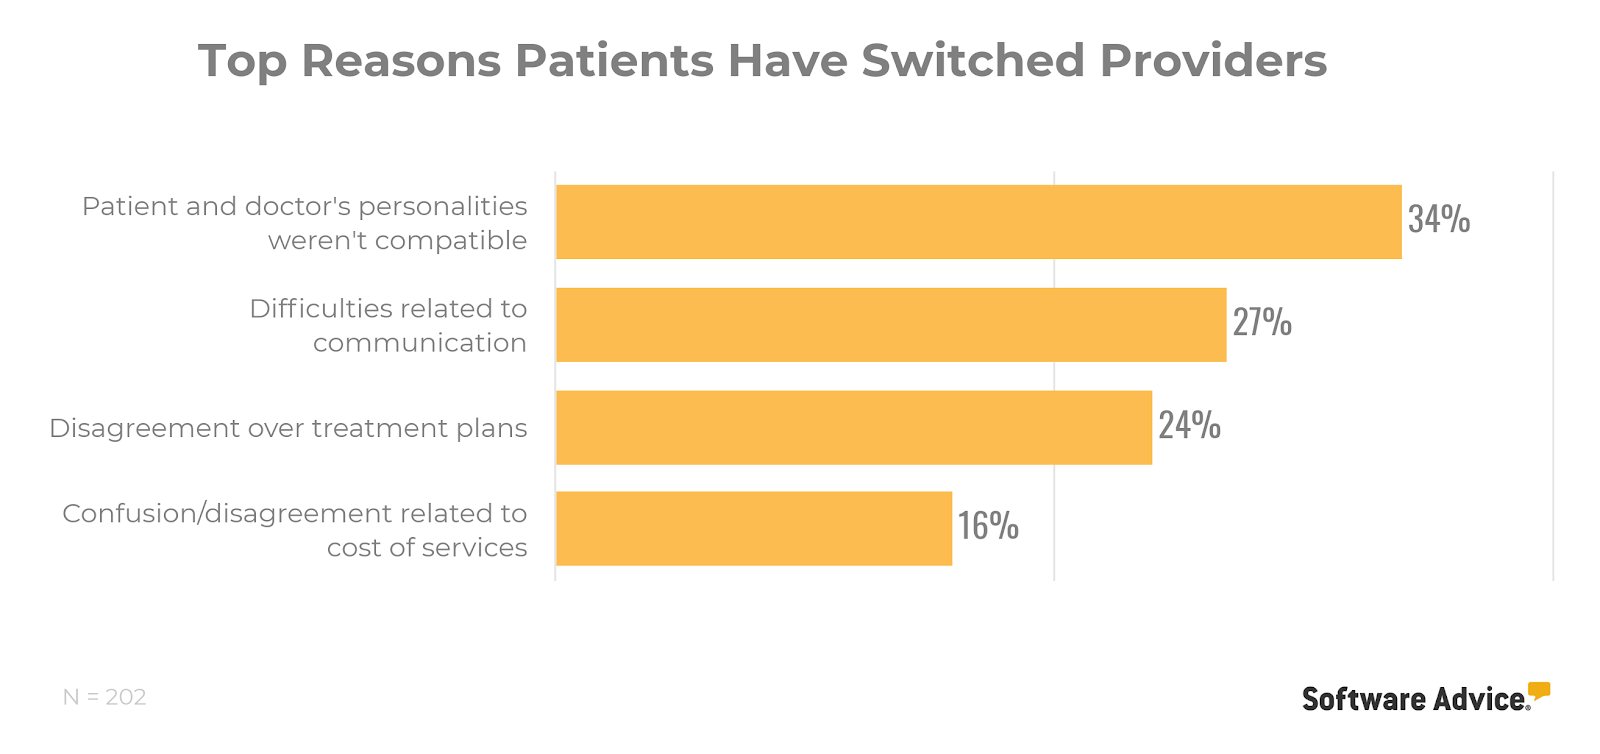 Top reasons patients have switched providers